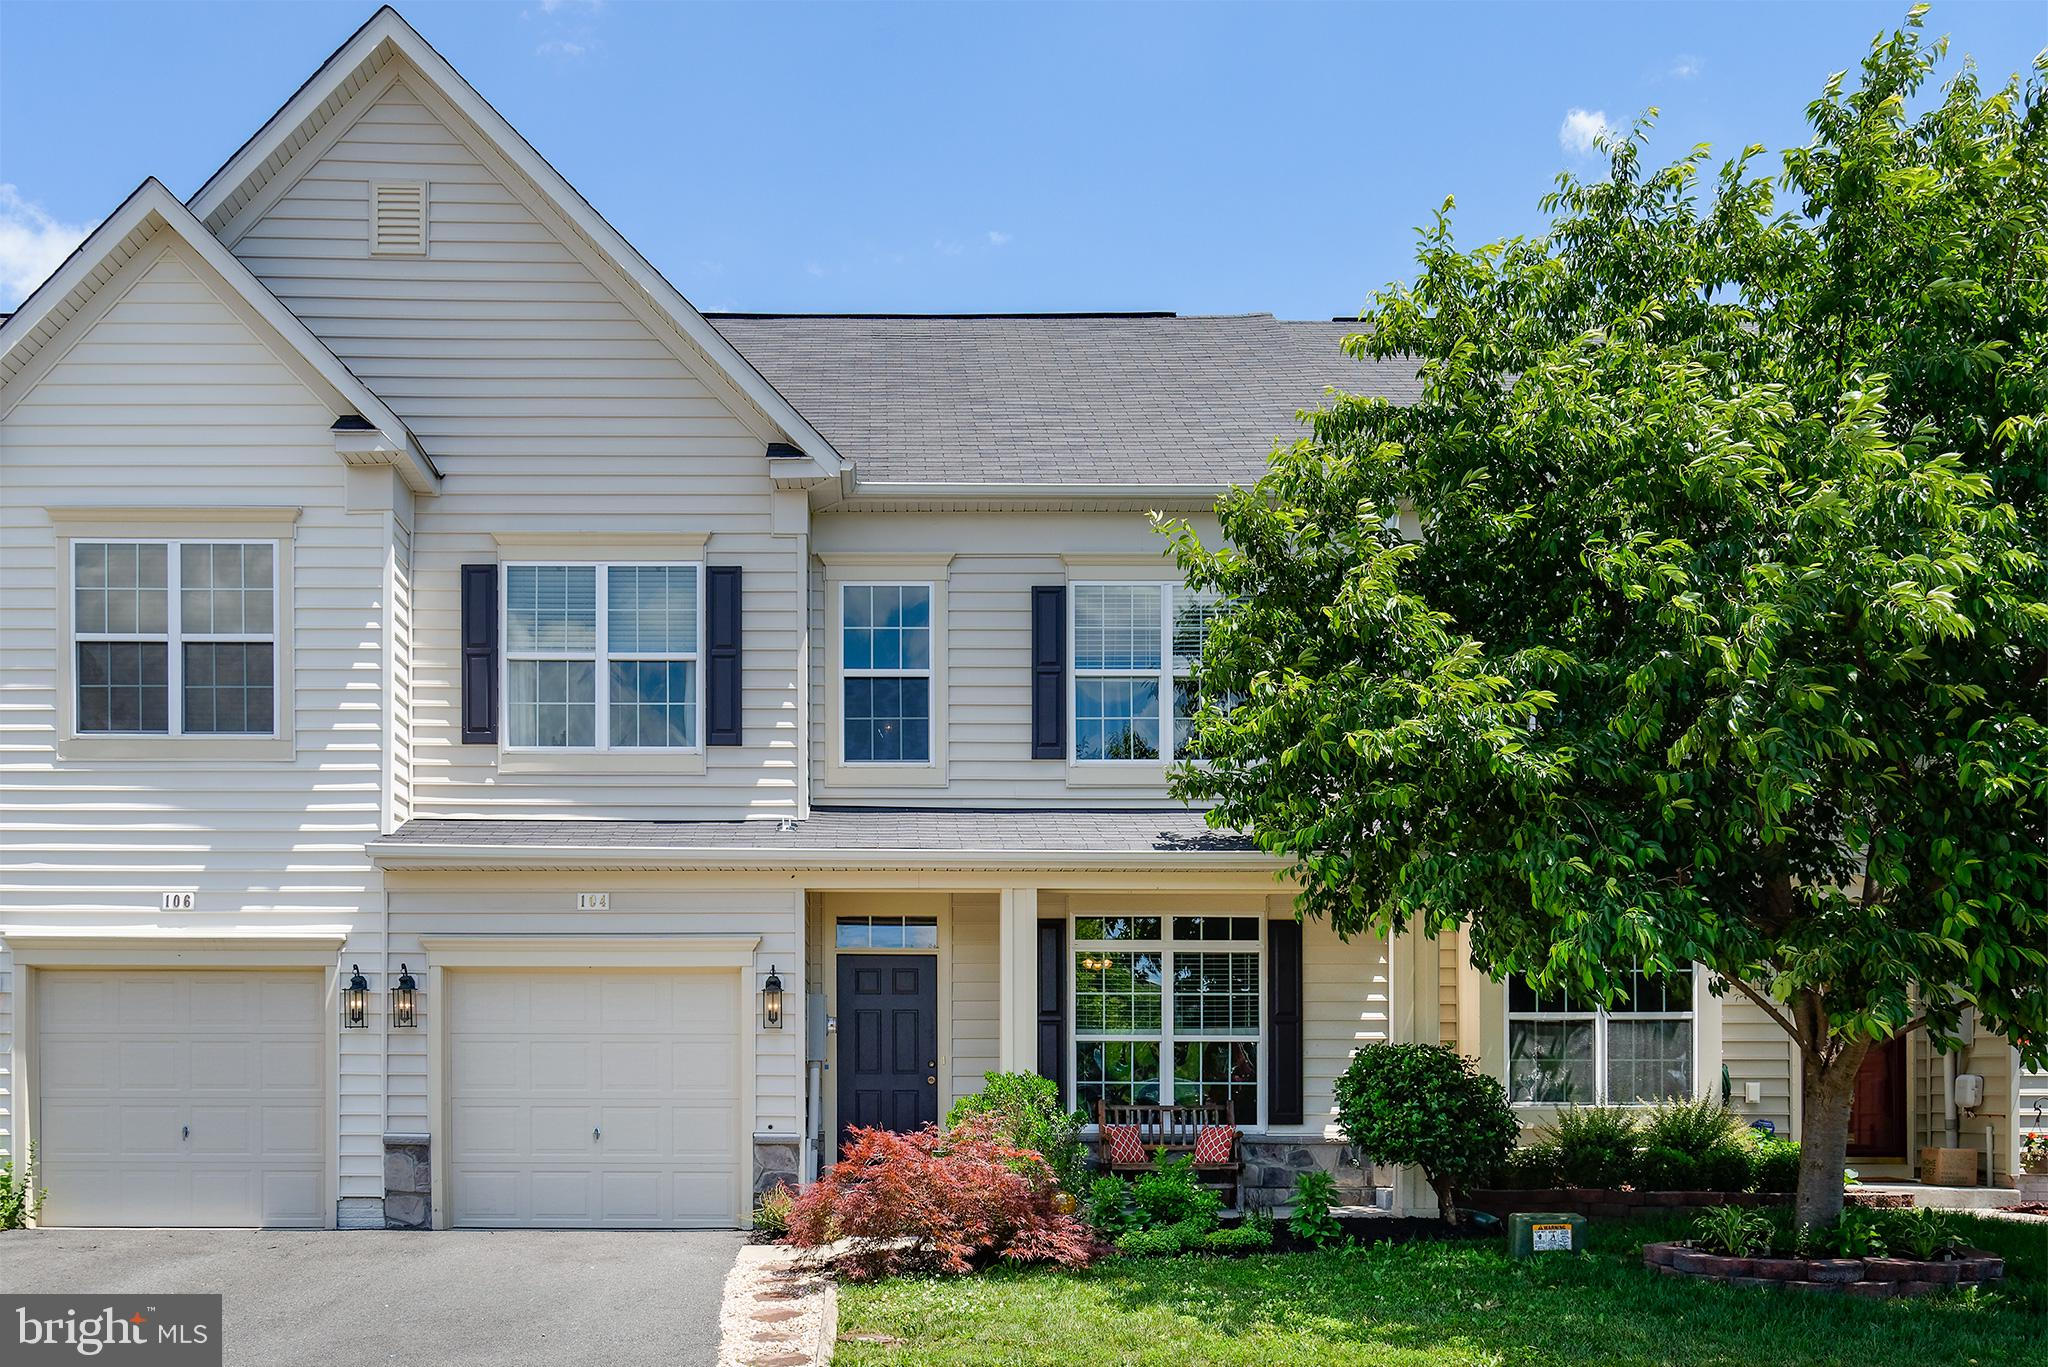 Absolutely charming 3-BR townhome in the quaint neighborhood of Wakeland Manor with amenities galore